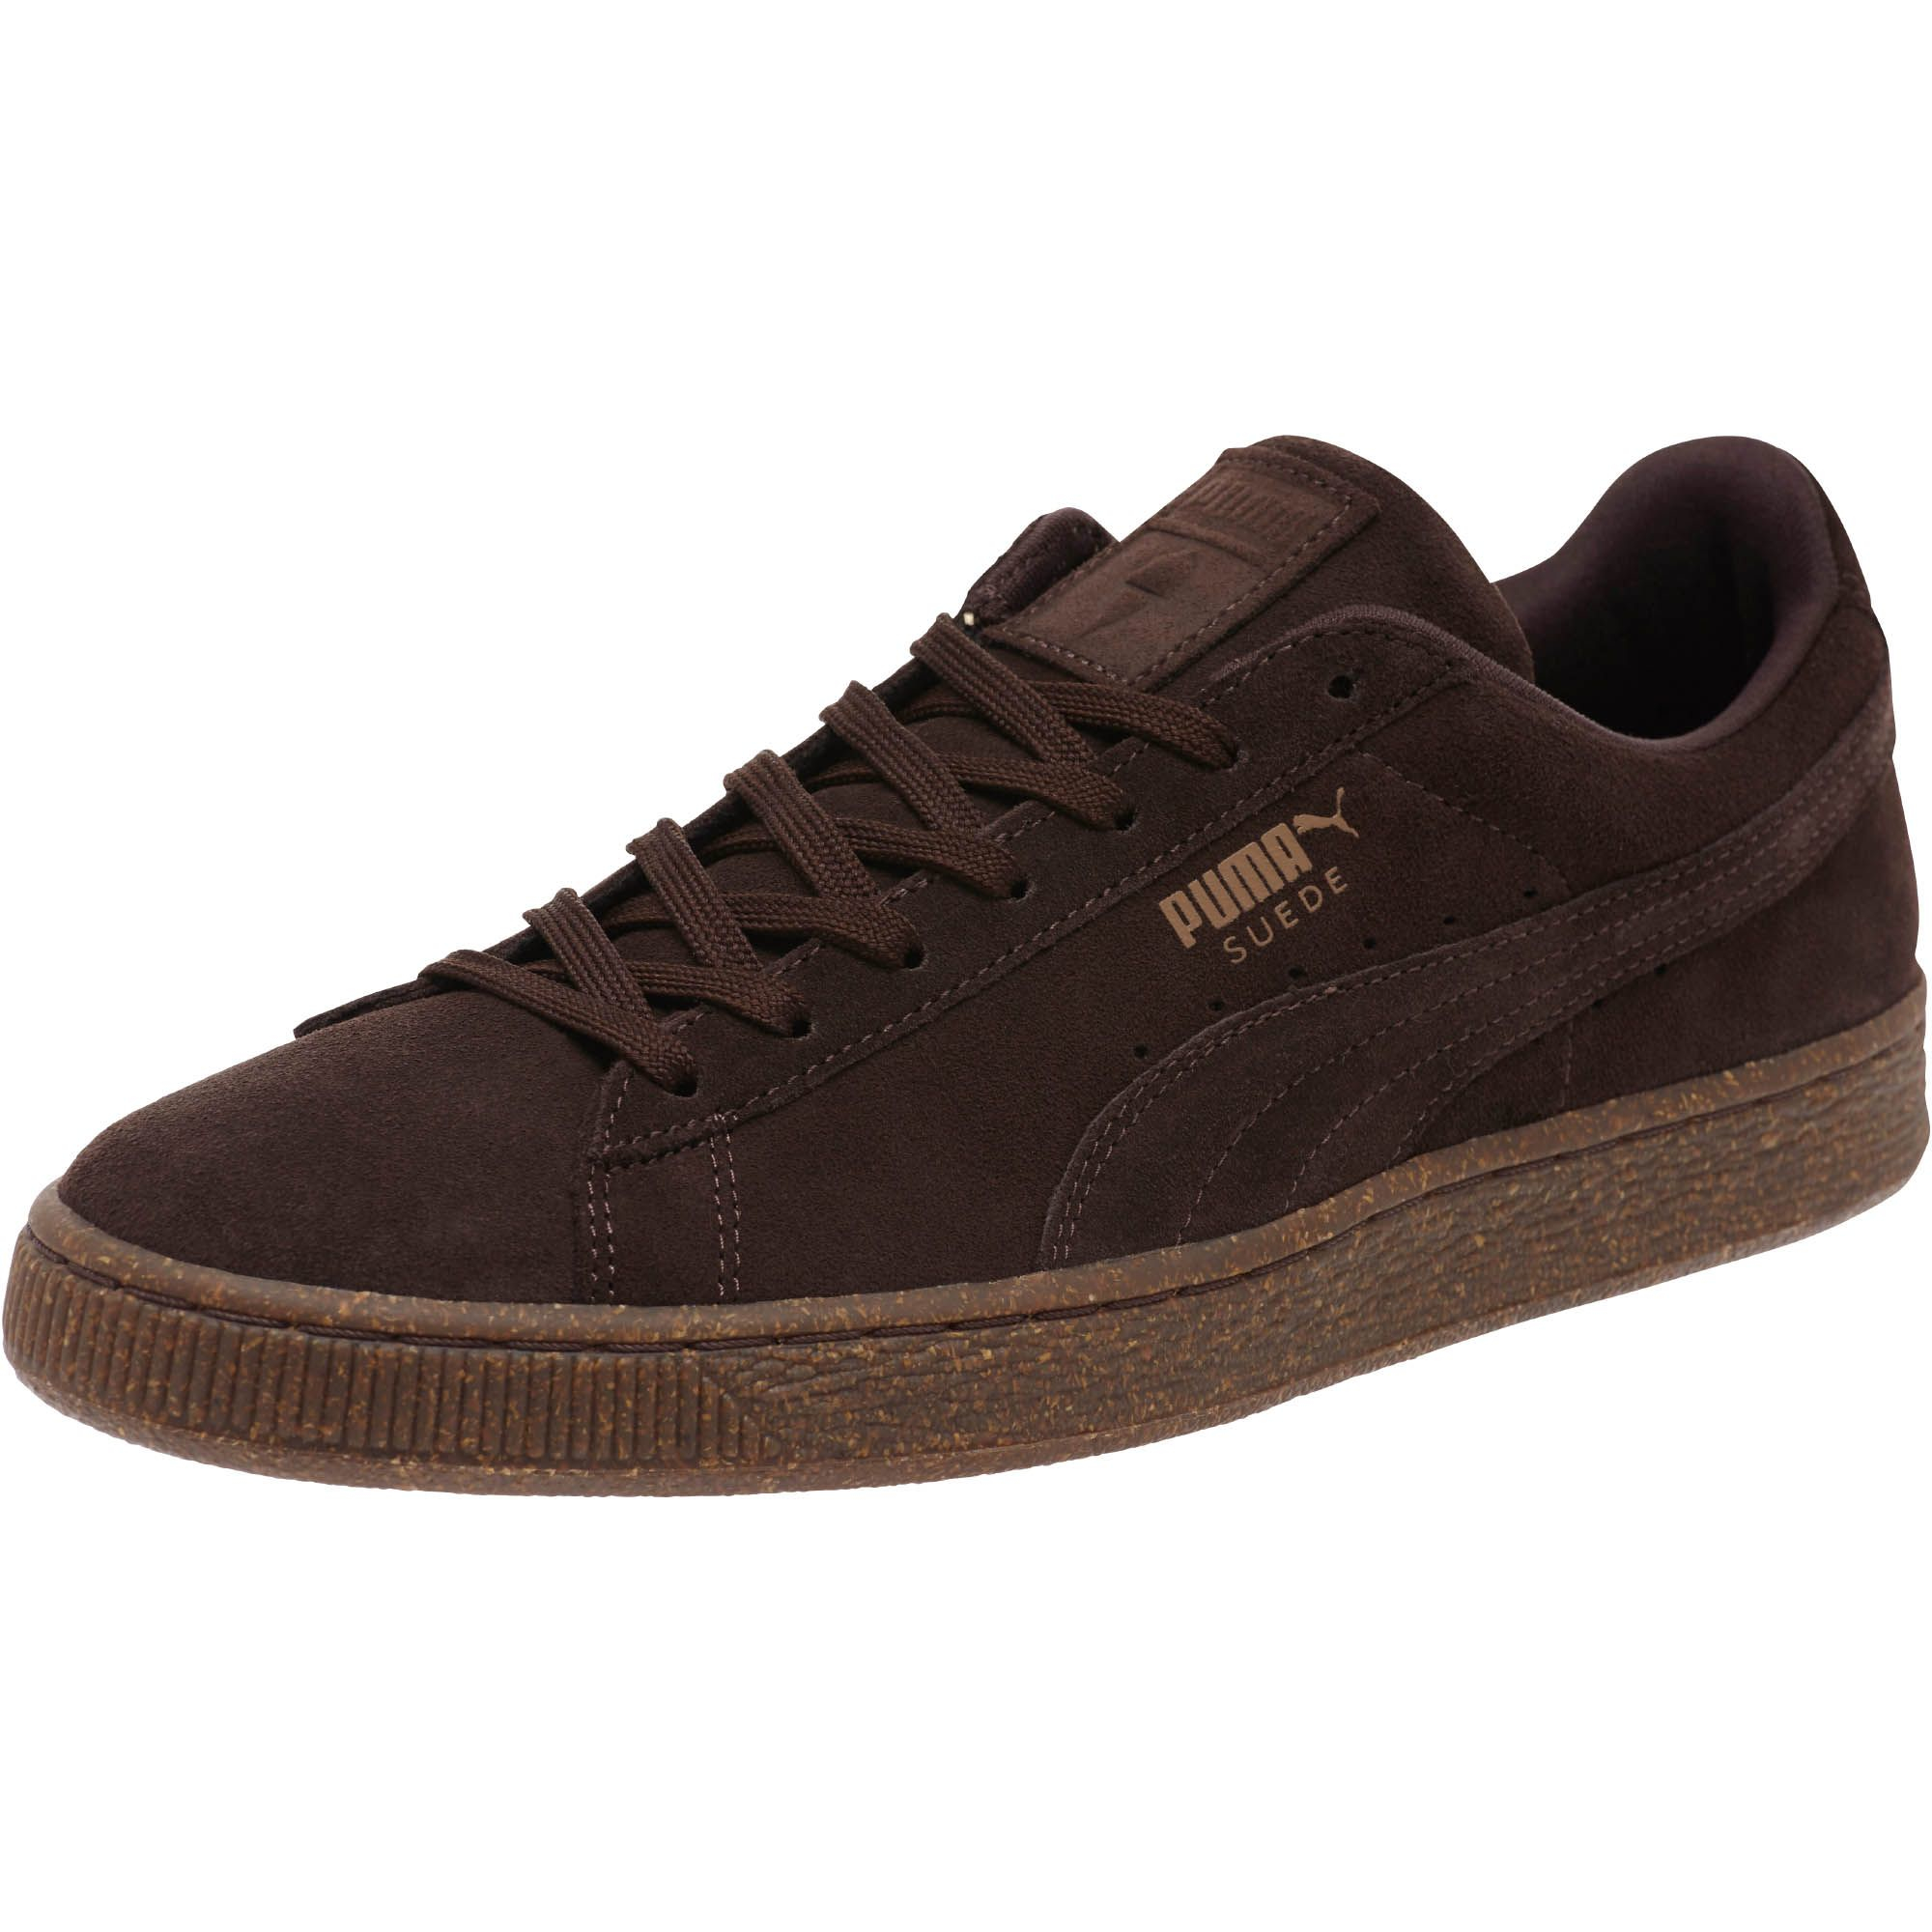 d869c0a3b69d Lyst - PUMA Suede Ice Cream Men s Sneakers in Brown for Men